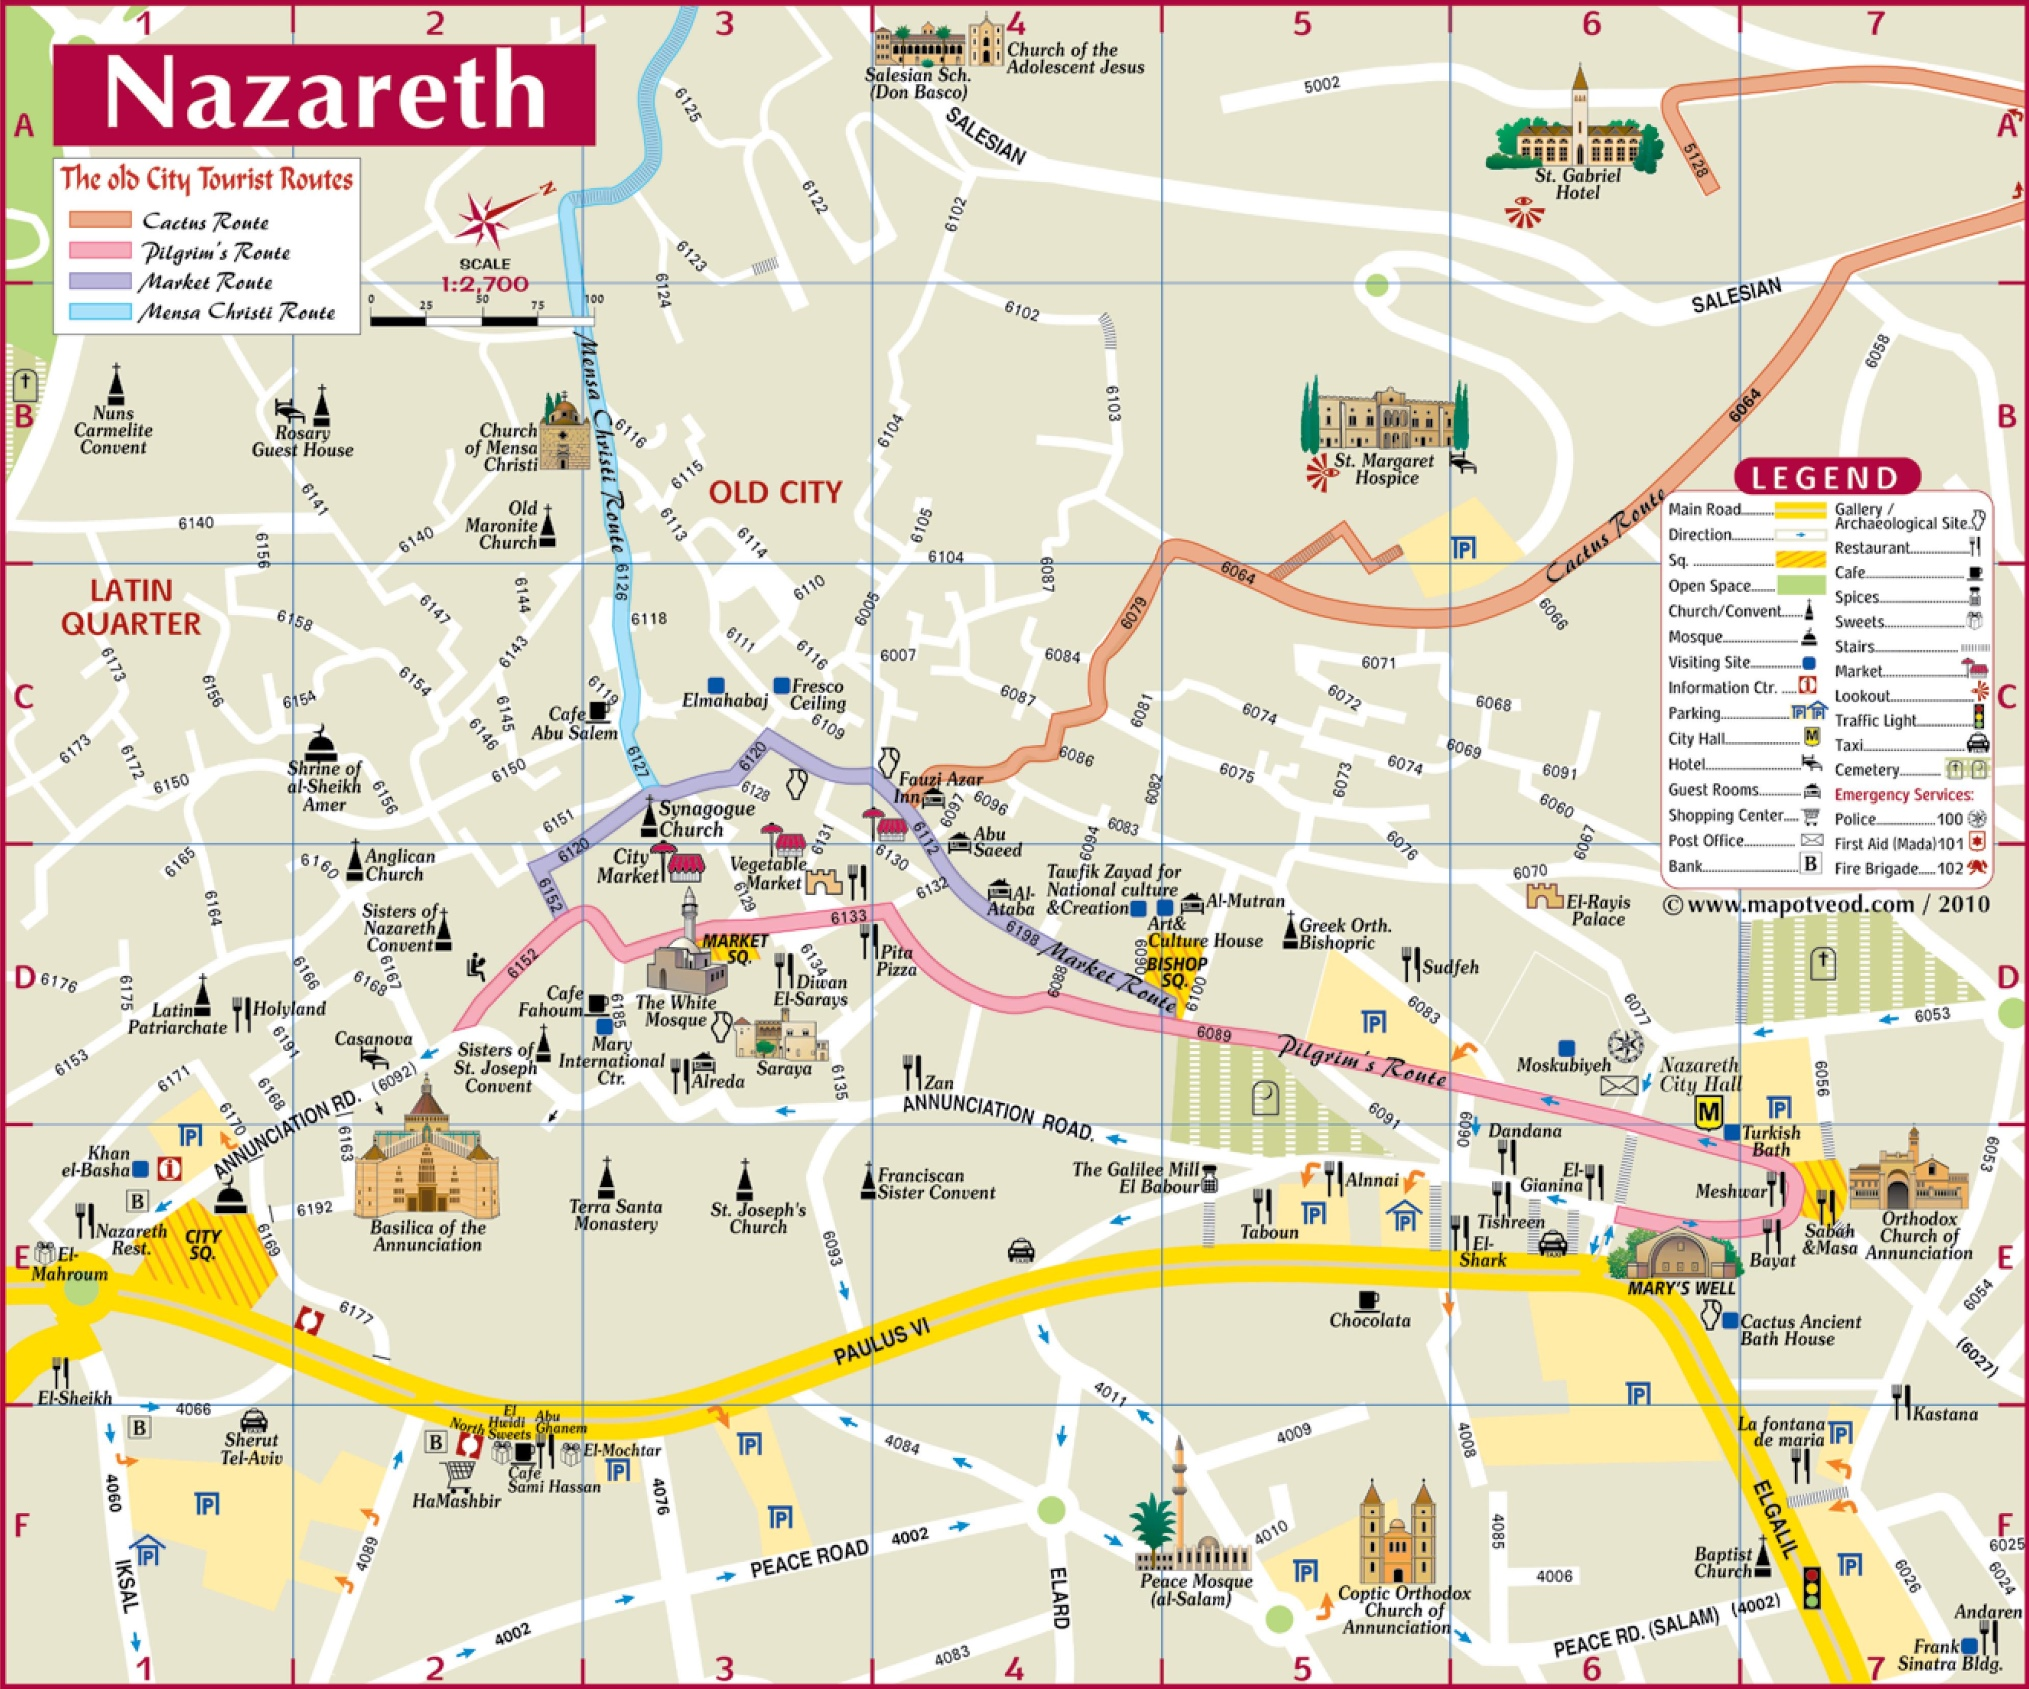 Large Nazareth Maps for Free Download and Print HighResolution